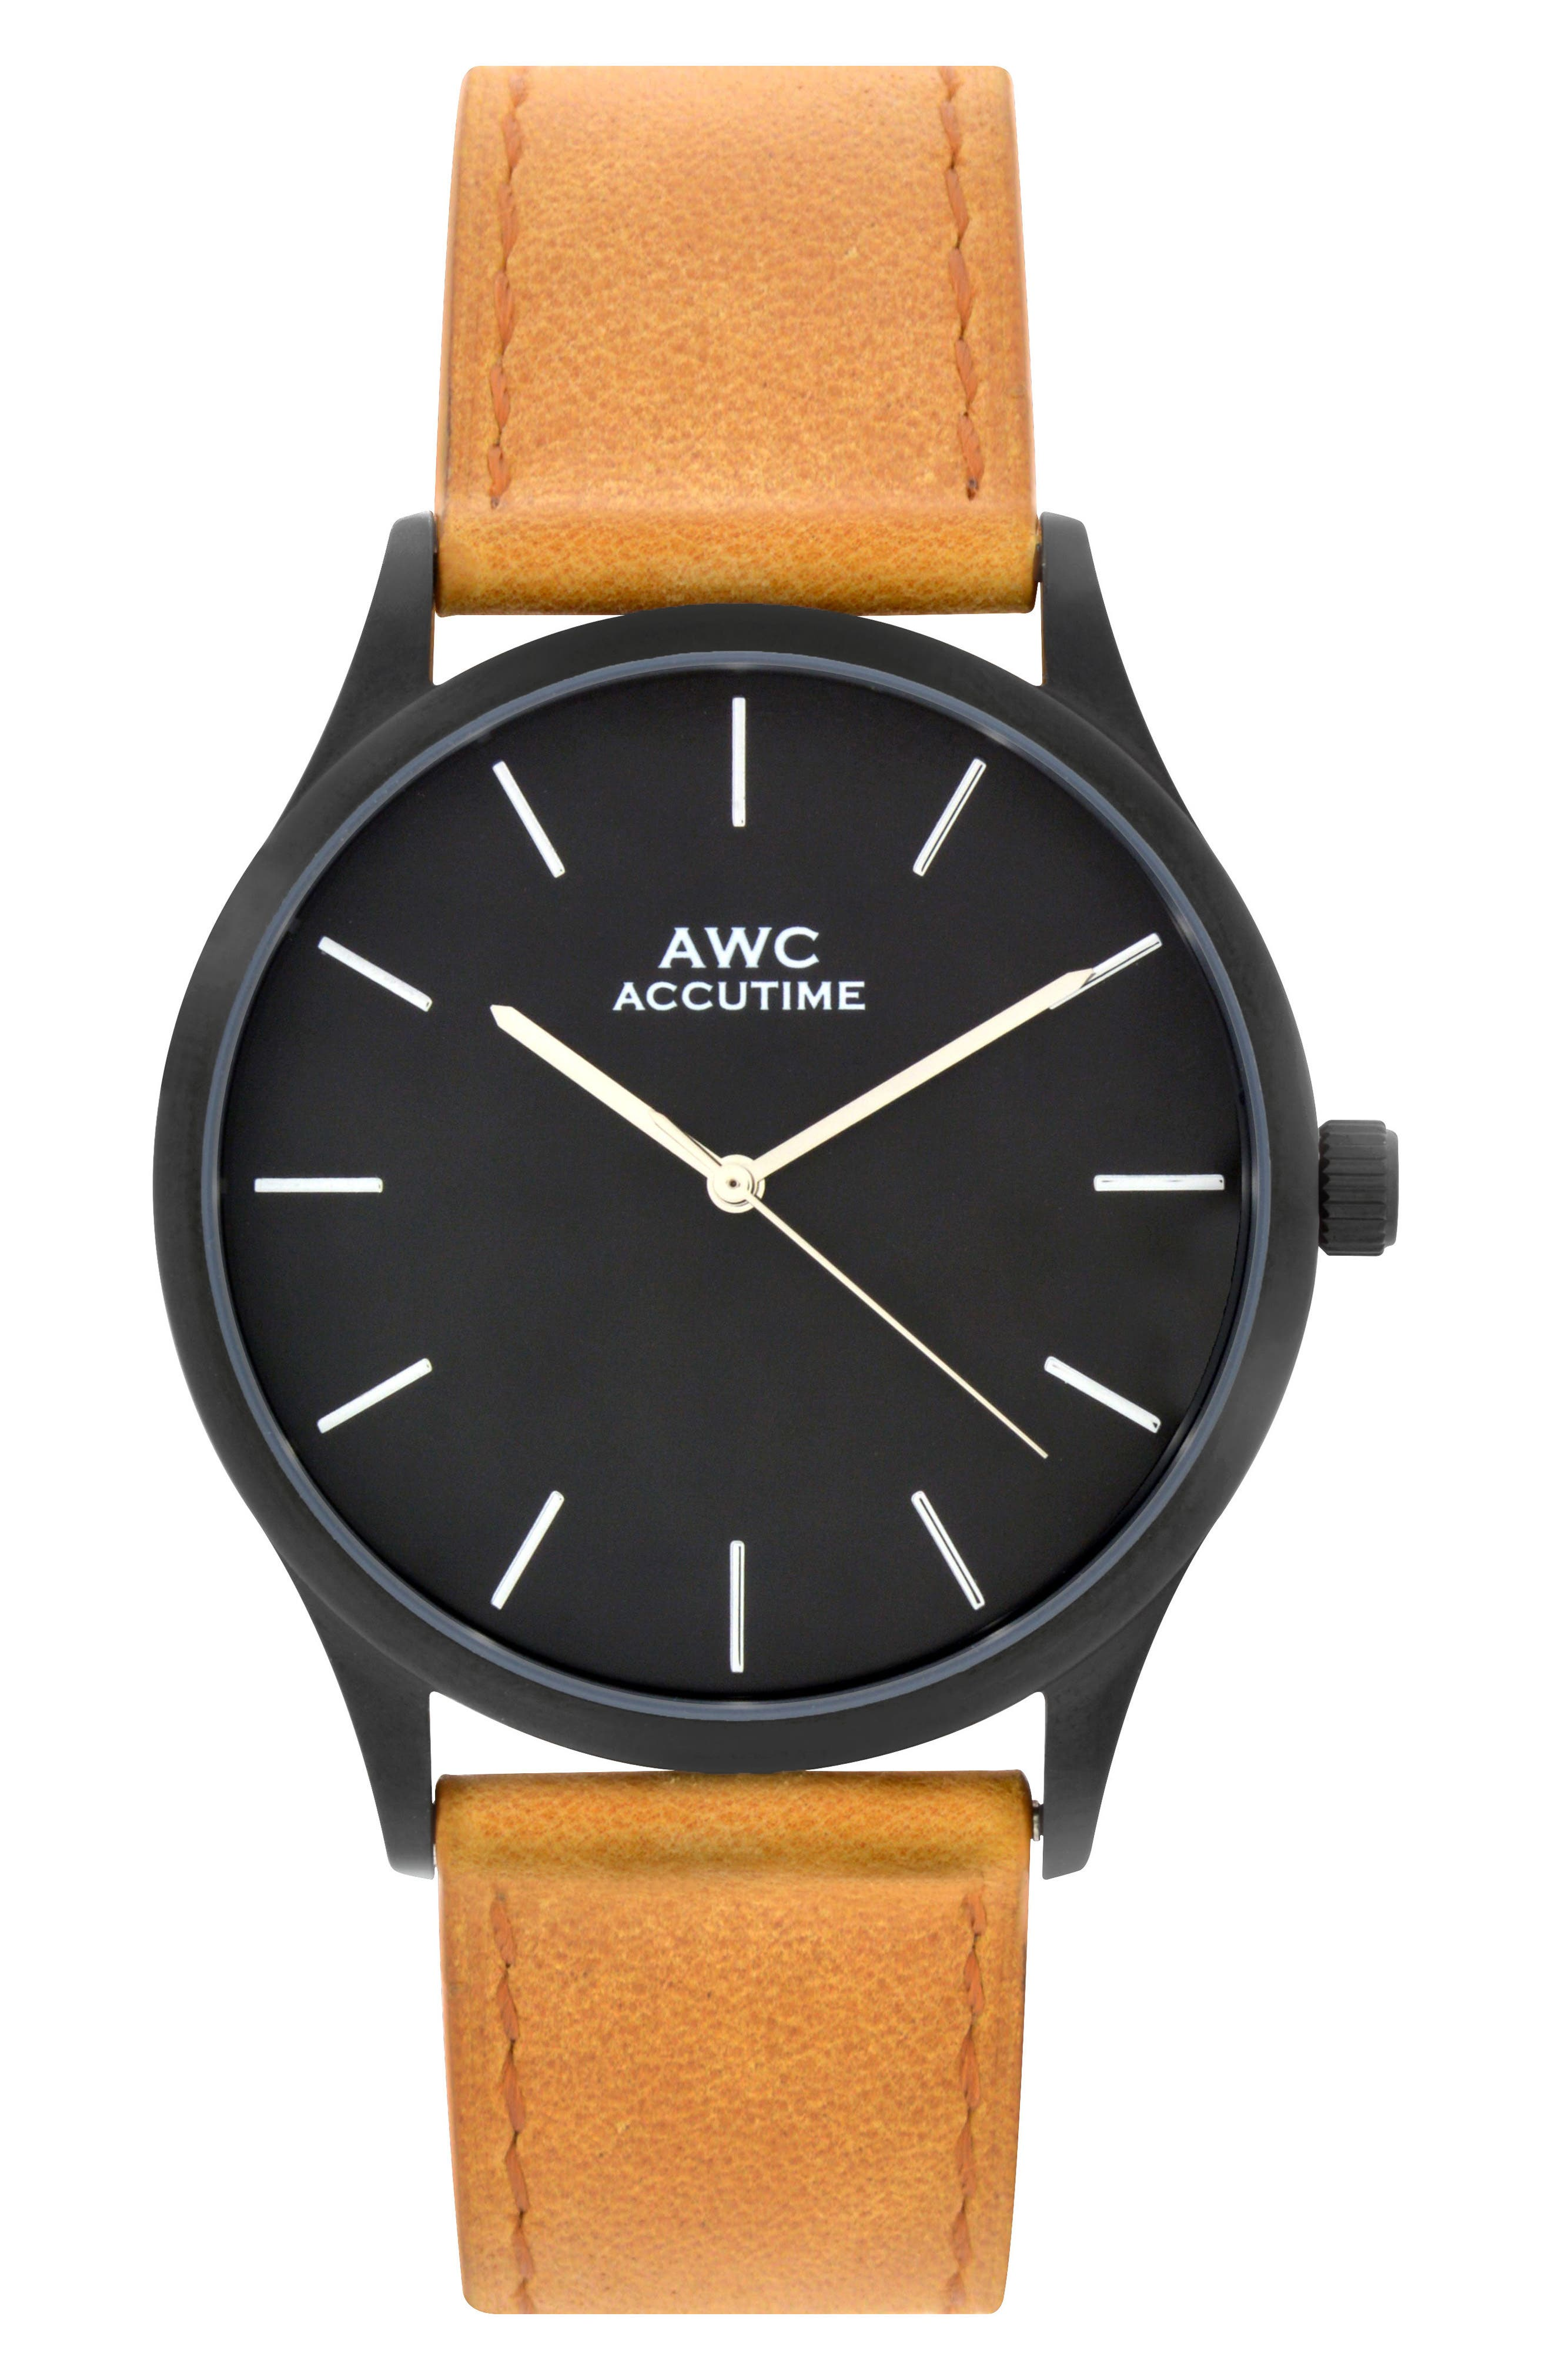 ACCUTIME Mark Leather Strap Watch, 42mm, Main, color, 260